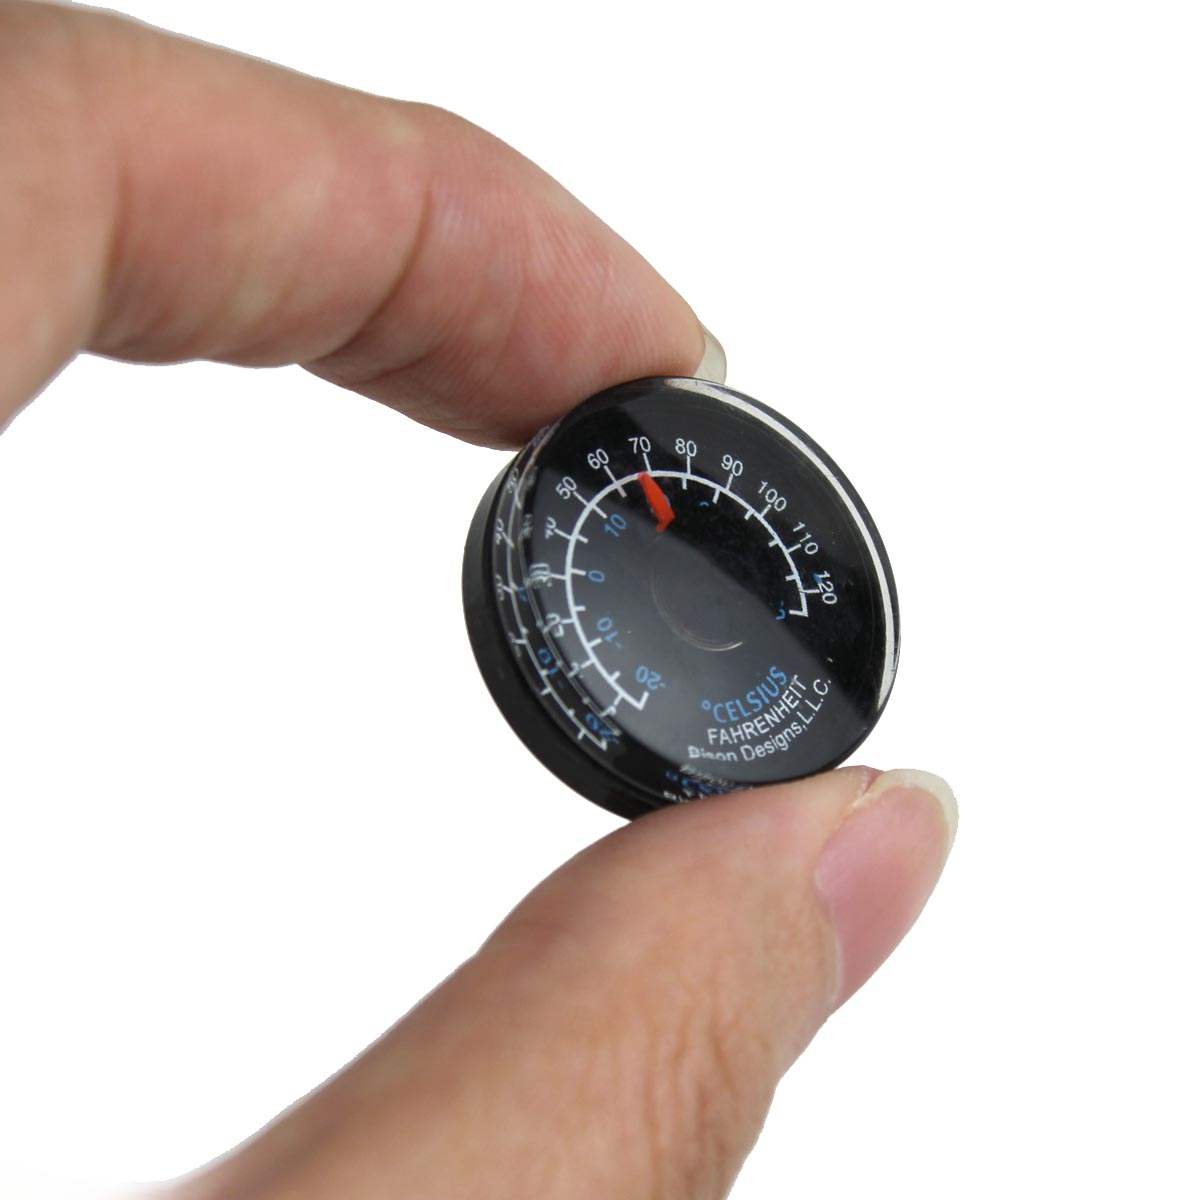 Plastic Circular Waterproof Thermometer for Household / Industry Indoor